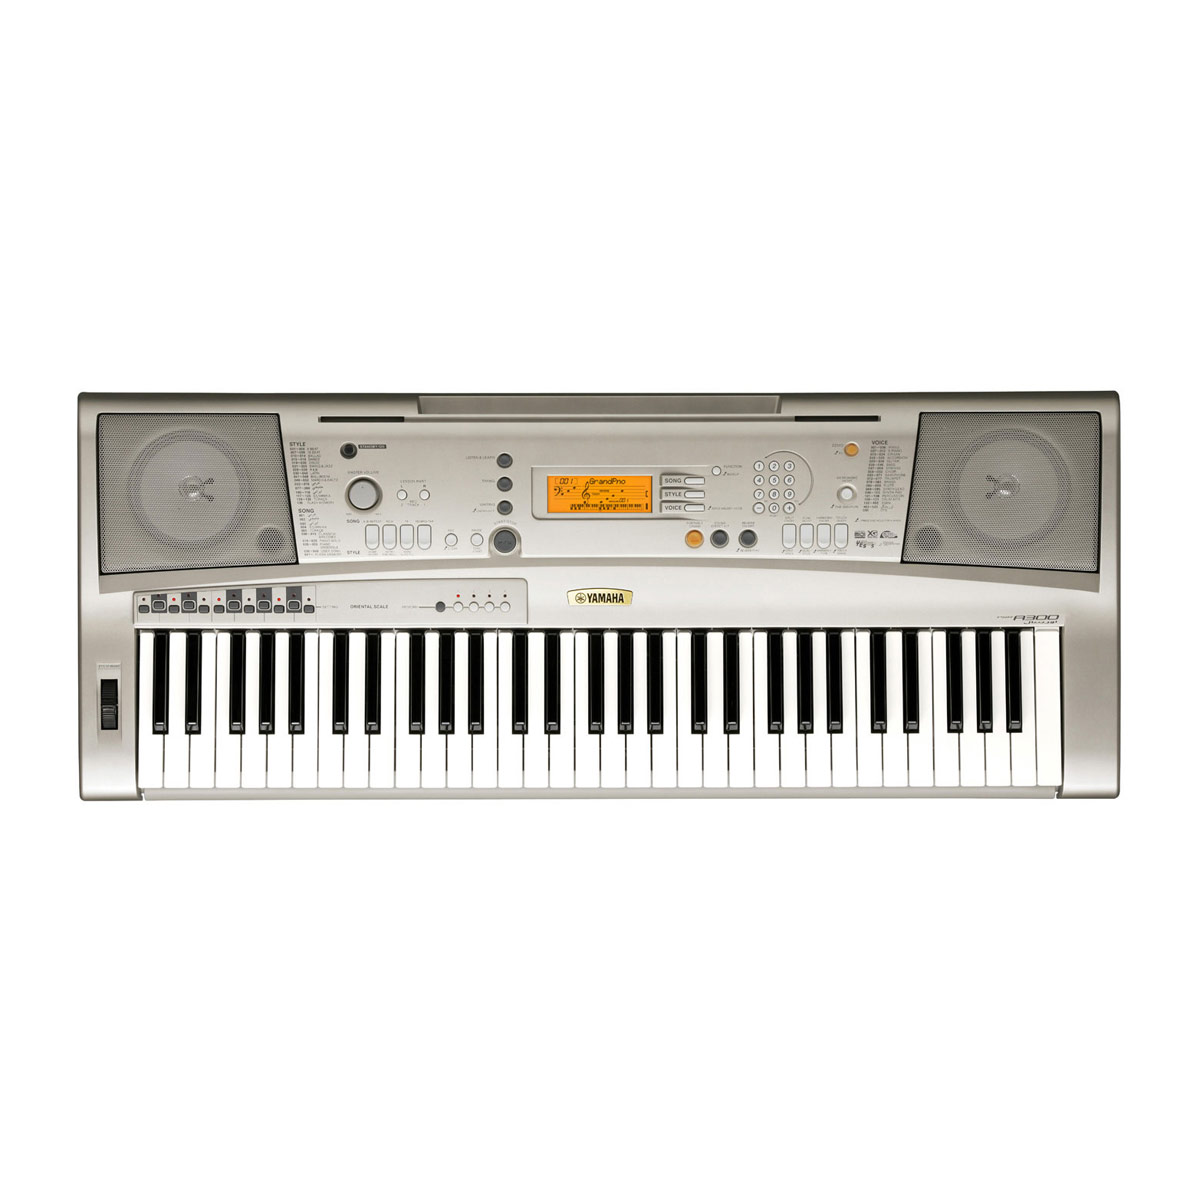 Clavier portable mp 11 electronic keyboard buy online for Housse clavier yamaha